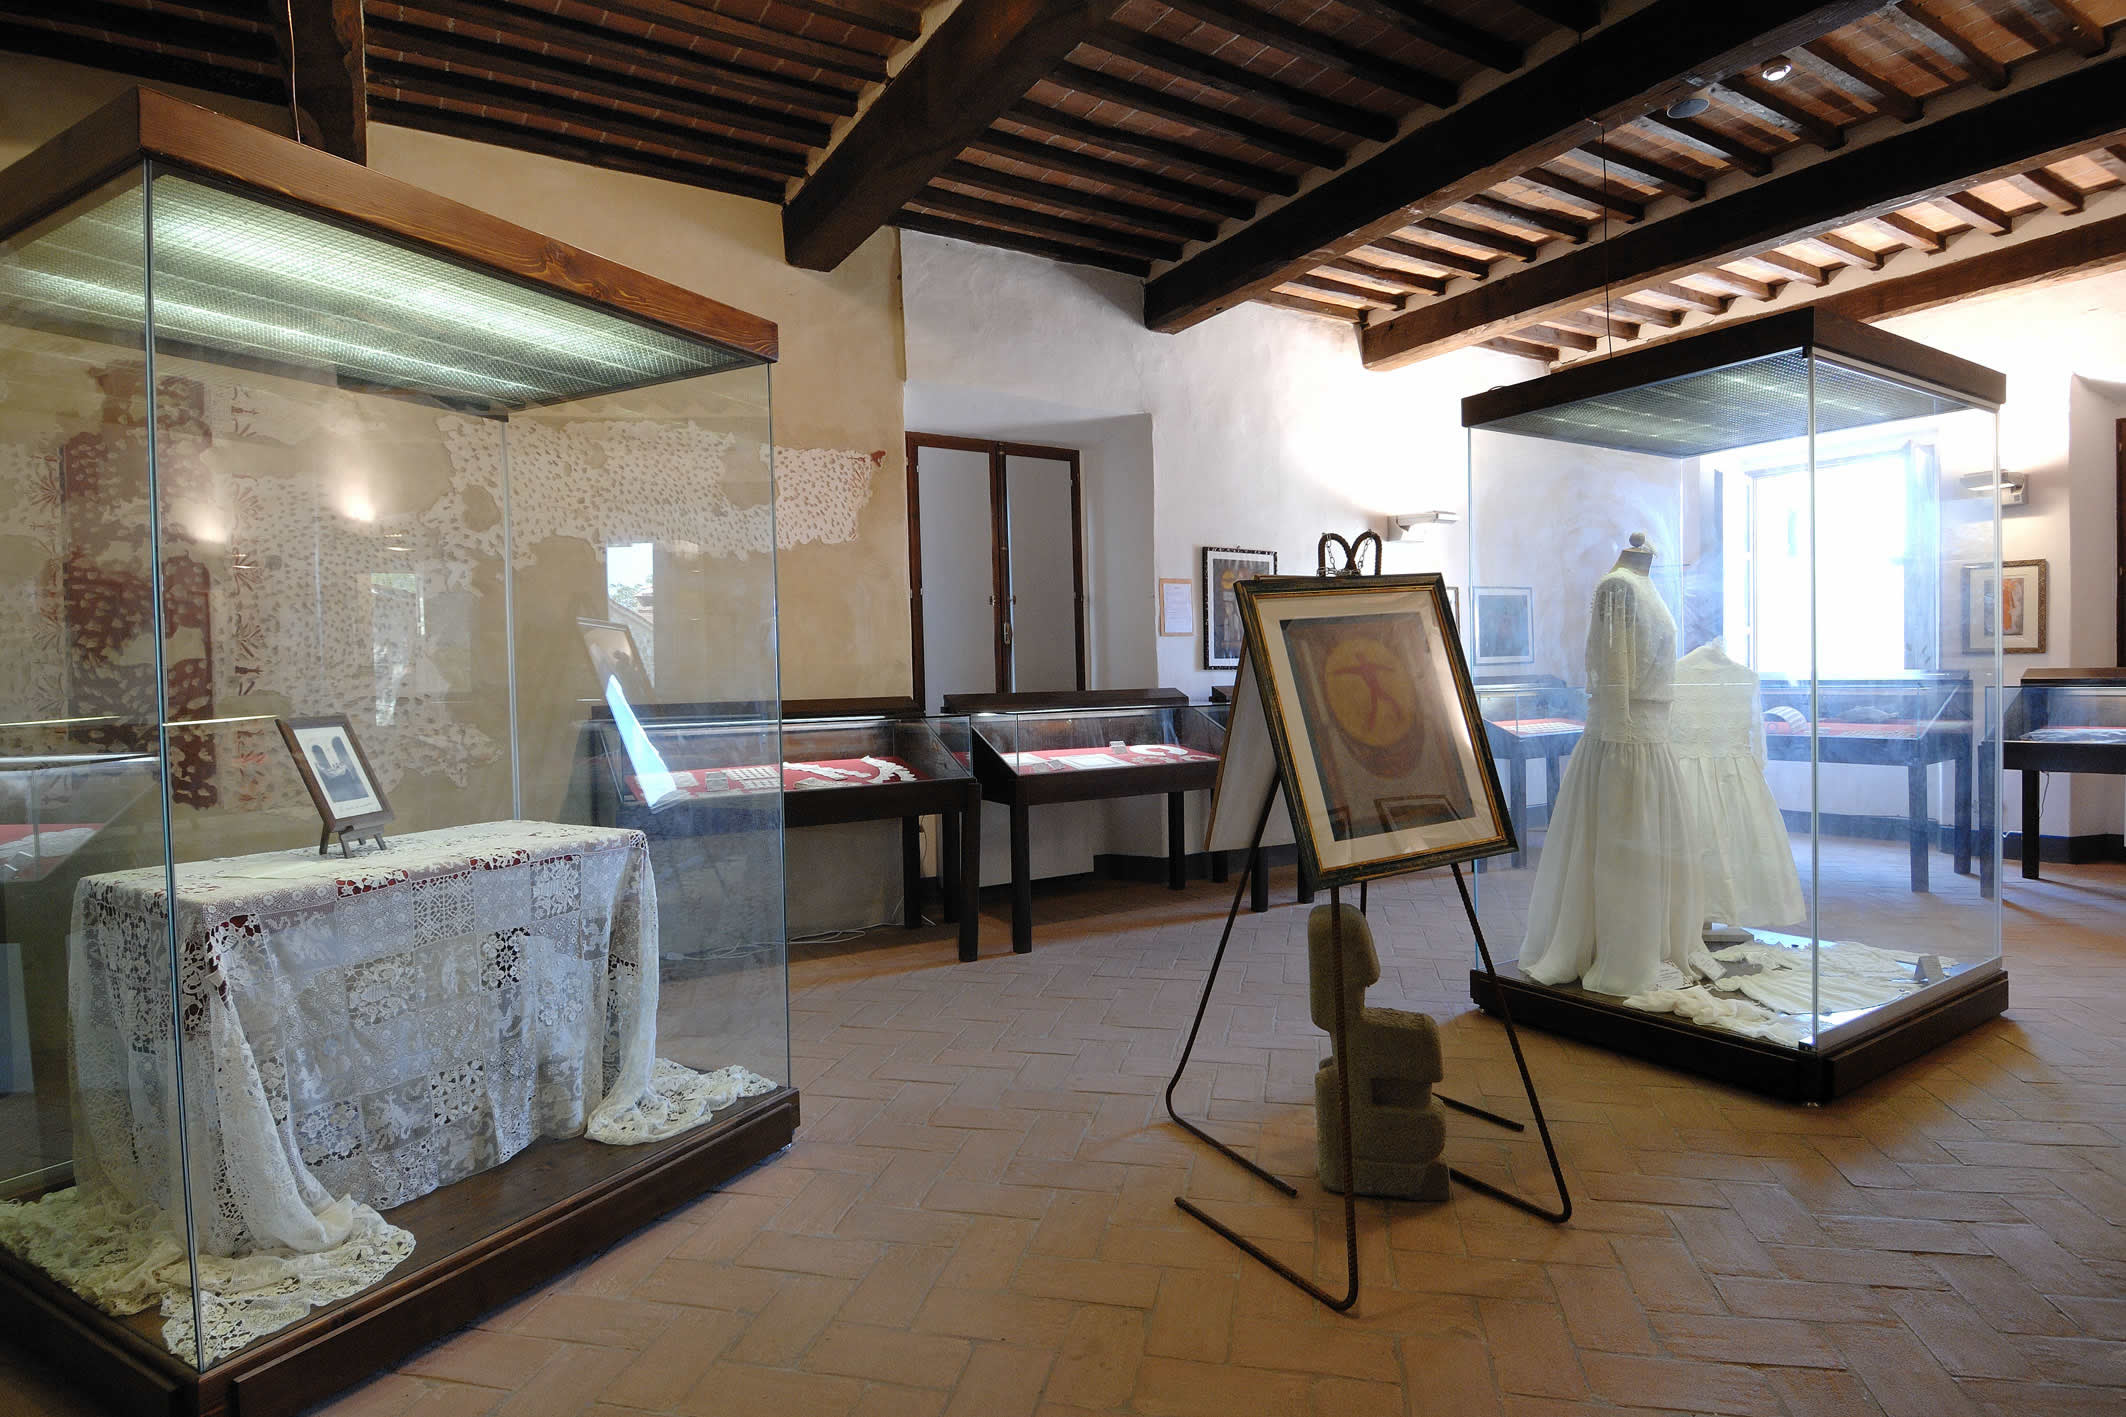 The Museo del Merletto